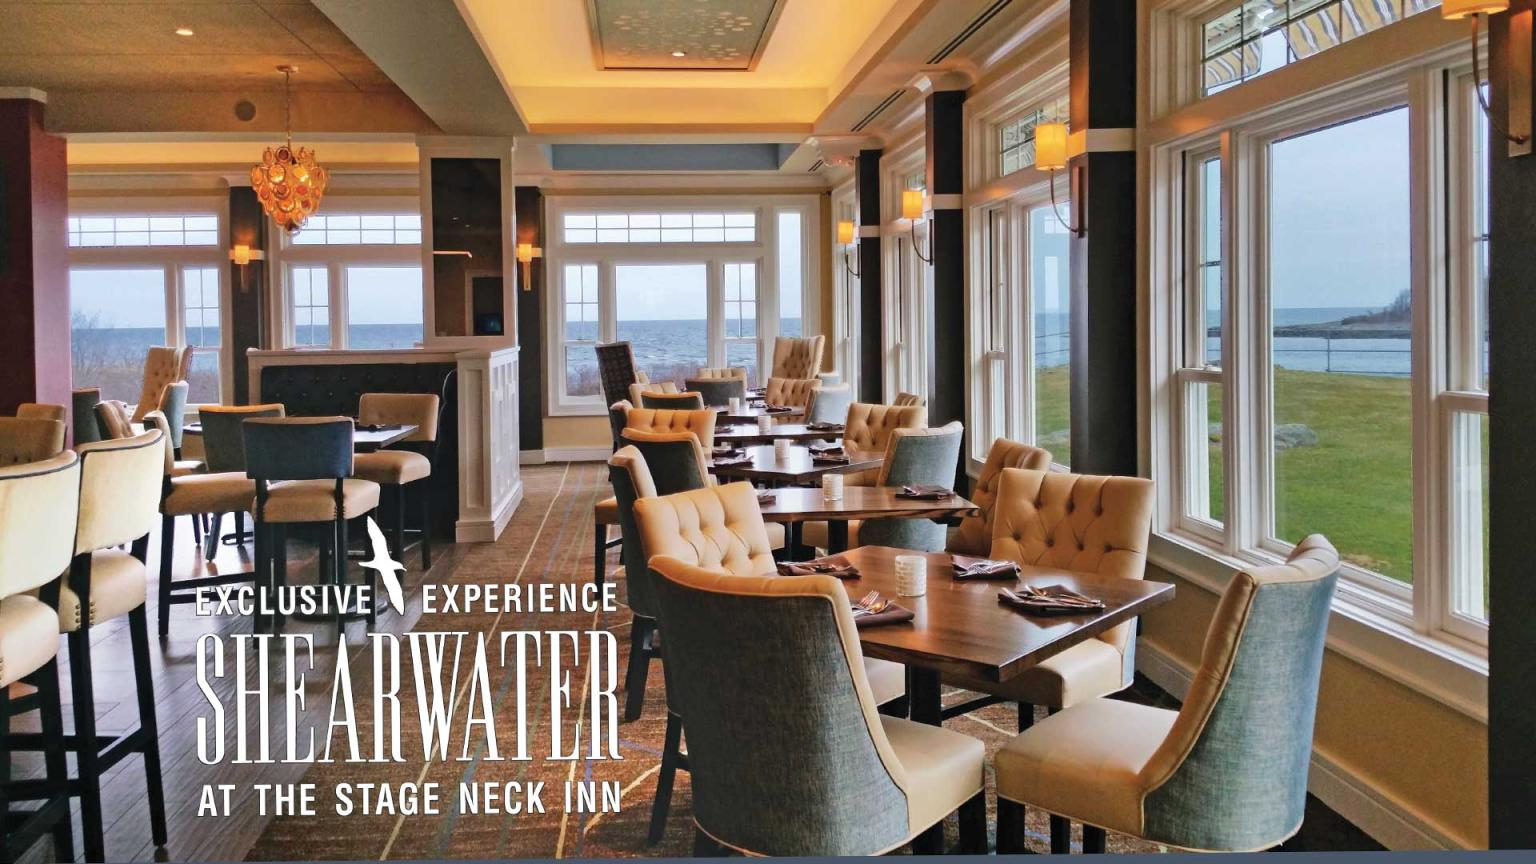 overview of Shearwater at Stage Neck Inn